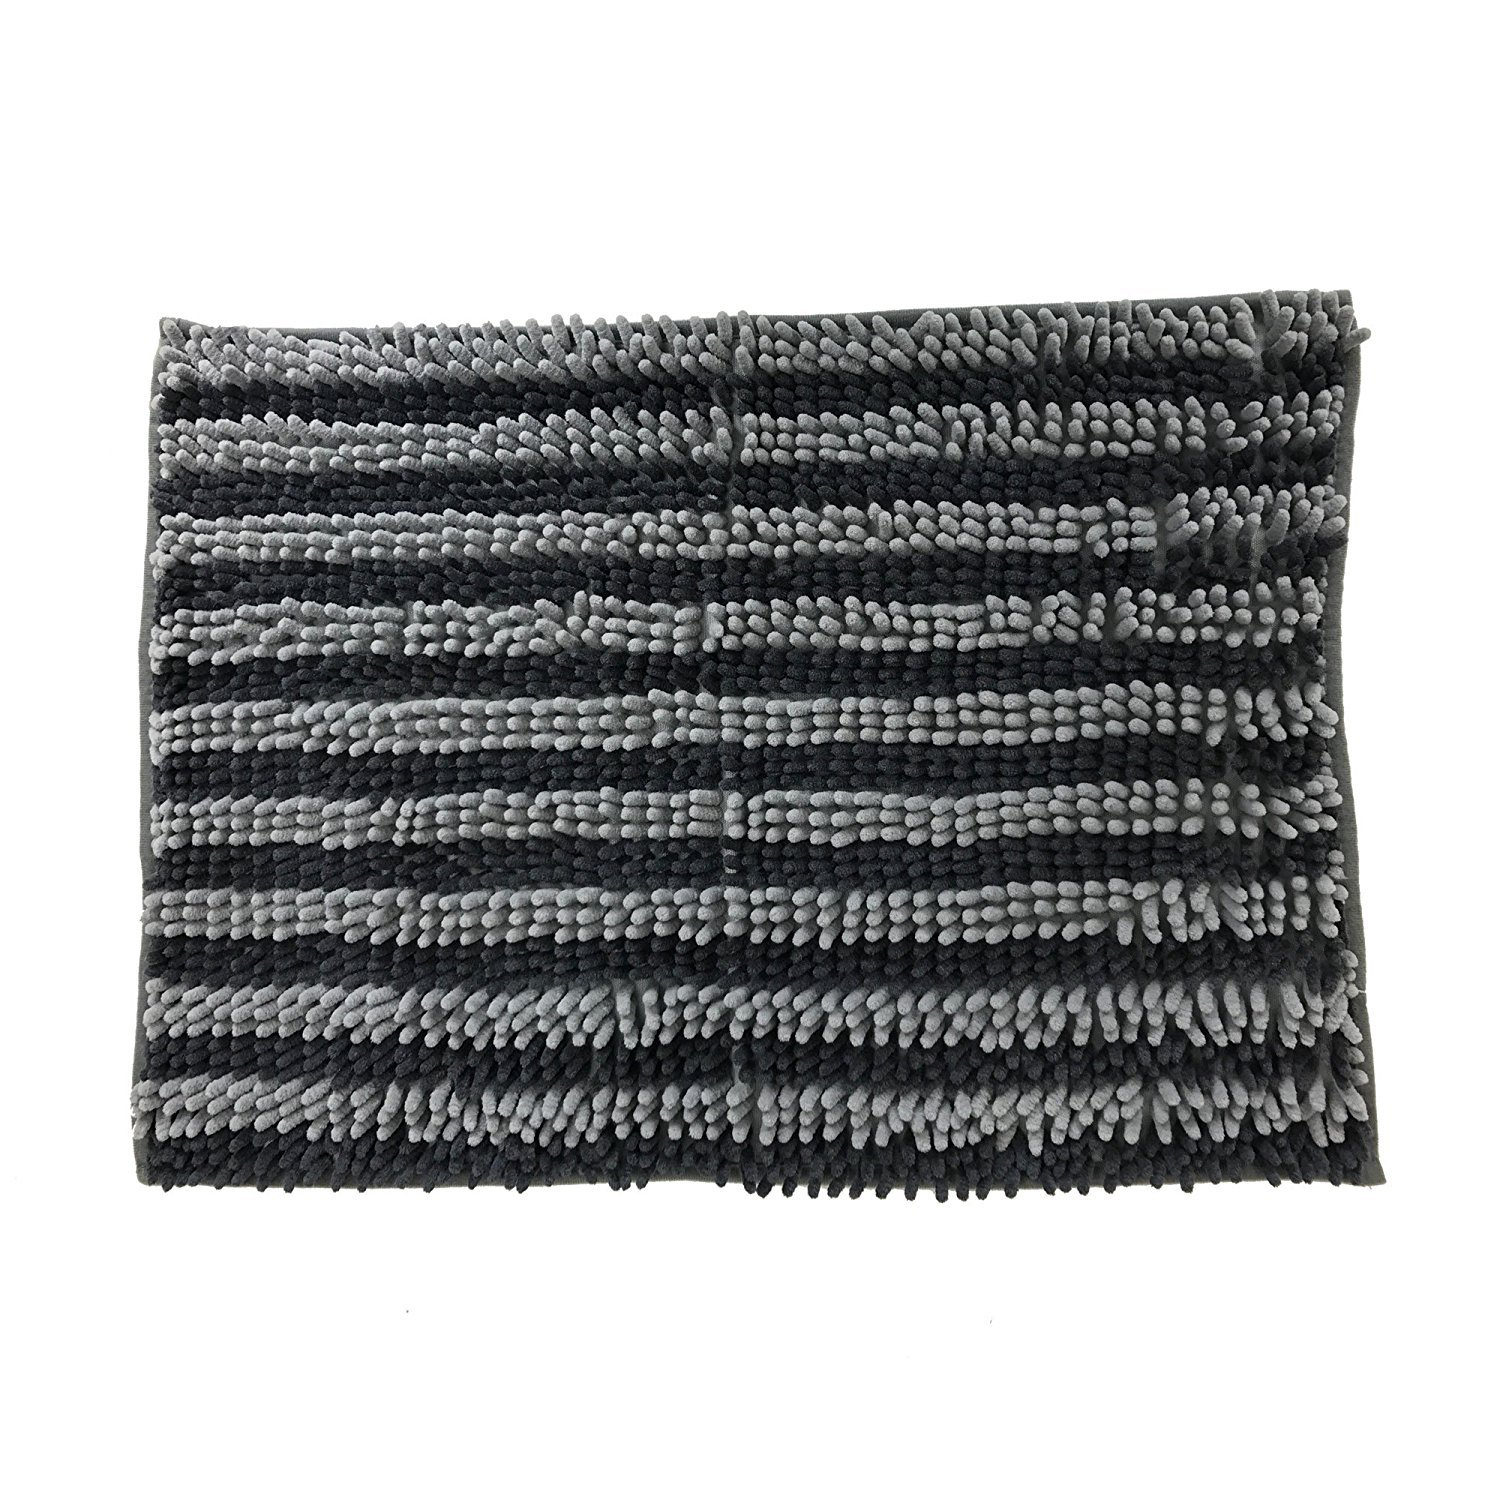 Dog Cat Pet Absorbent Microfiber Chenille Rug (24''x17'', Charcoal/Grey) by Pooch Pen (Image #1)